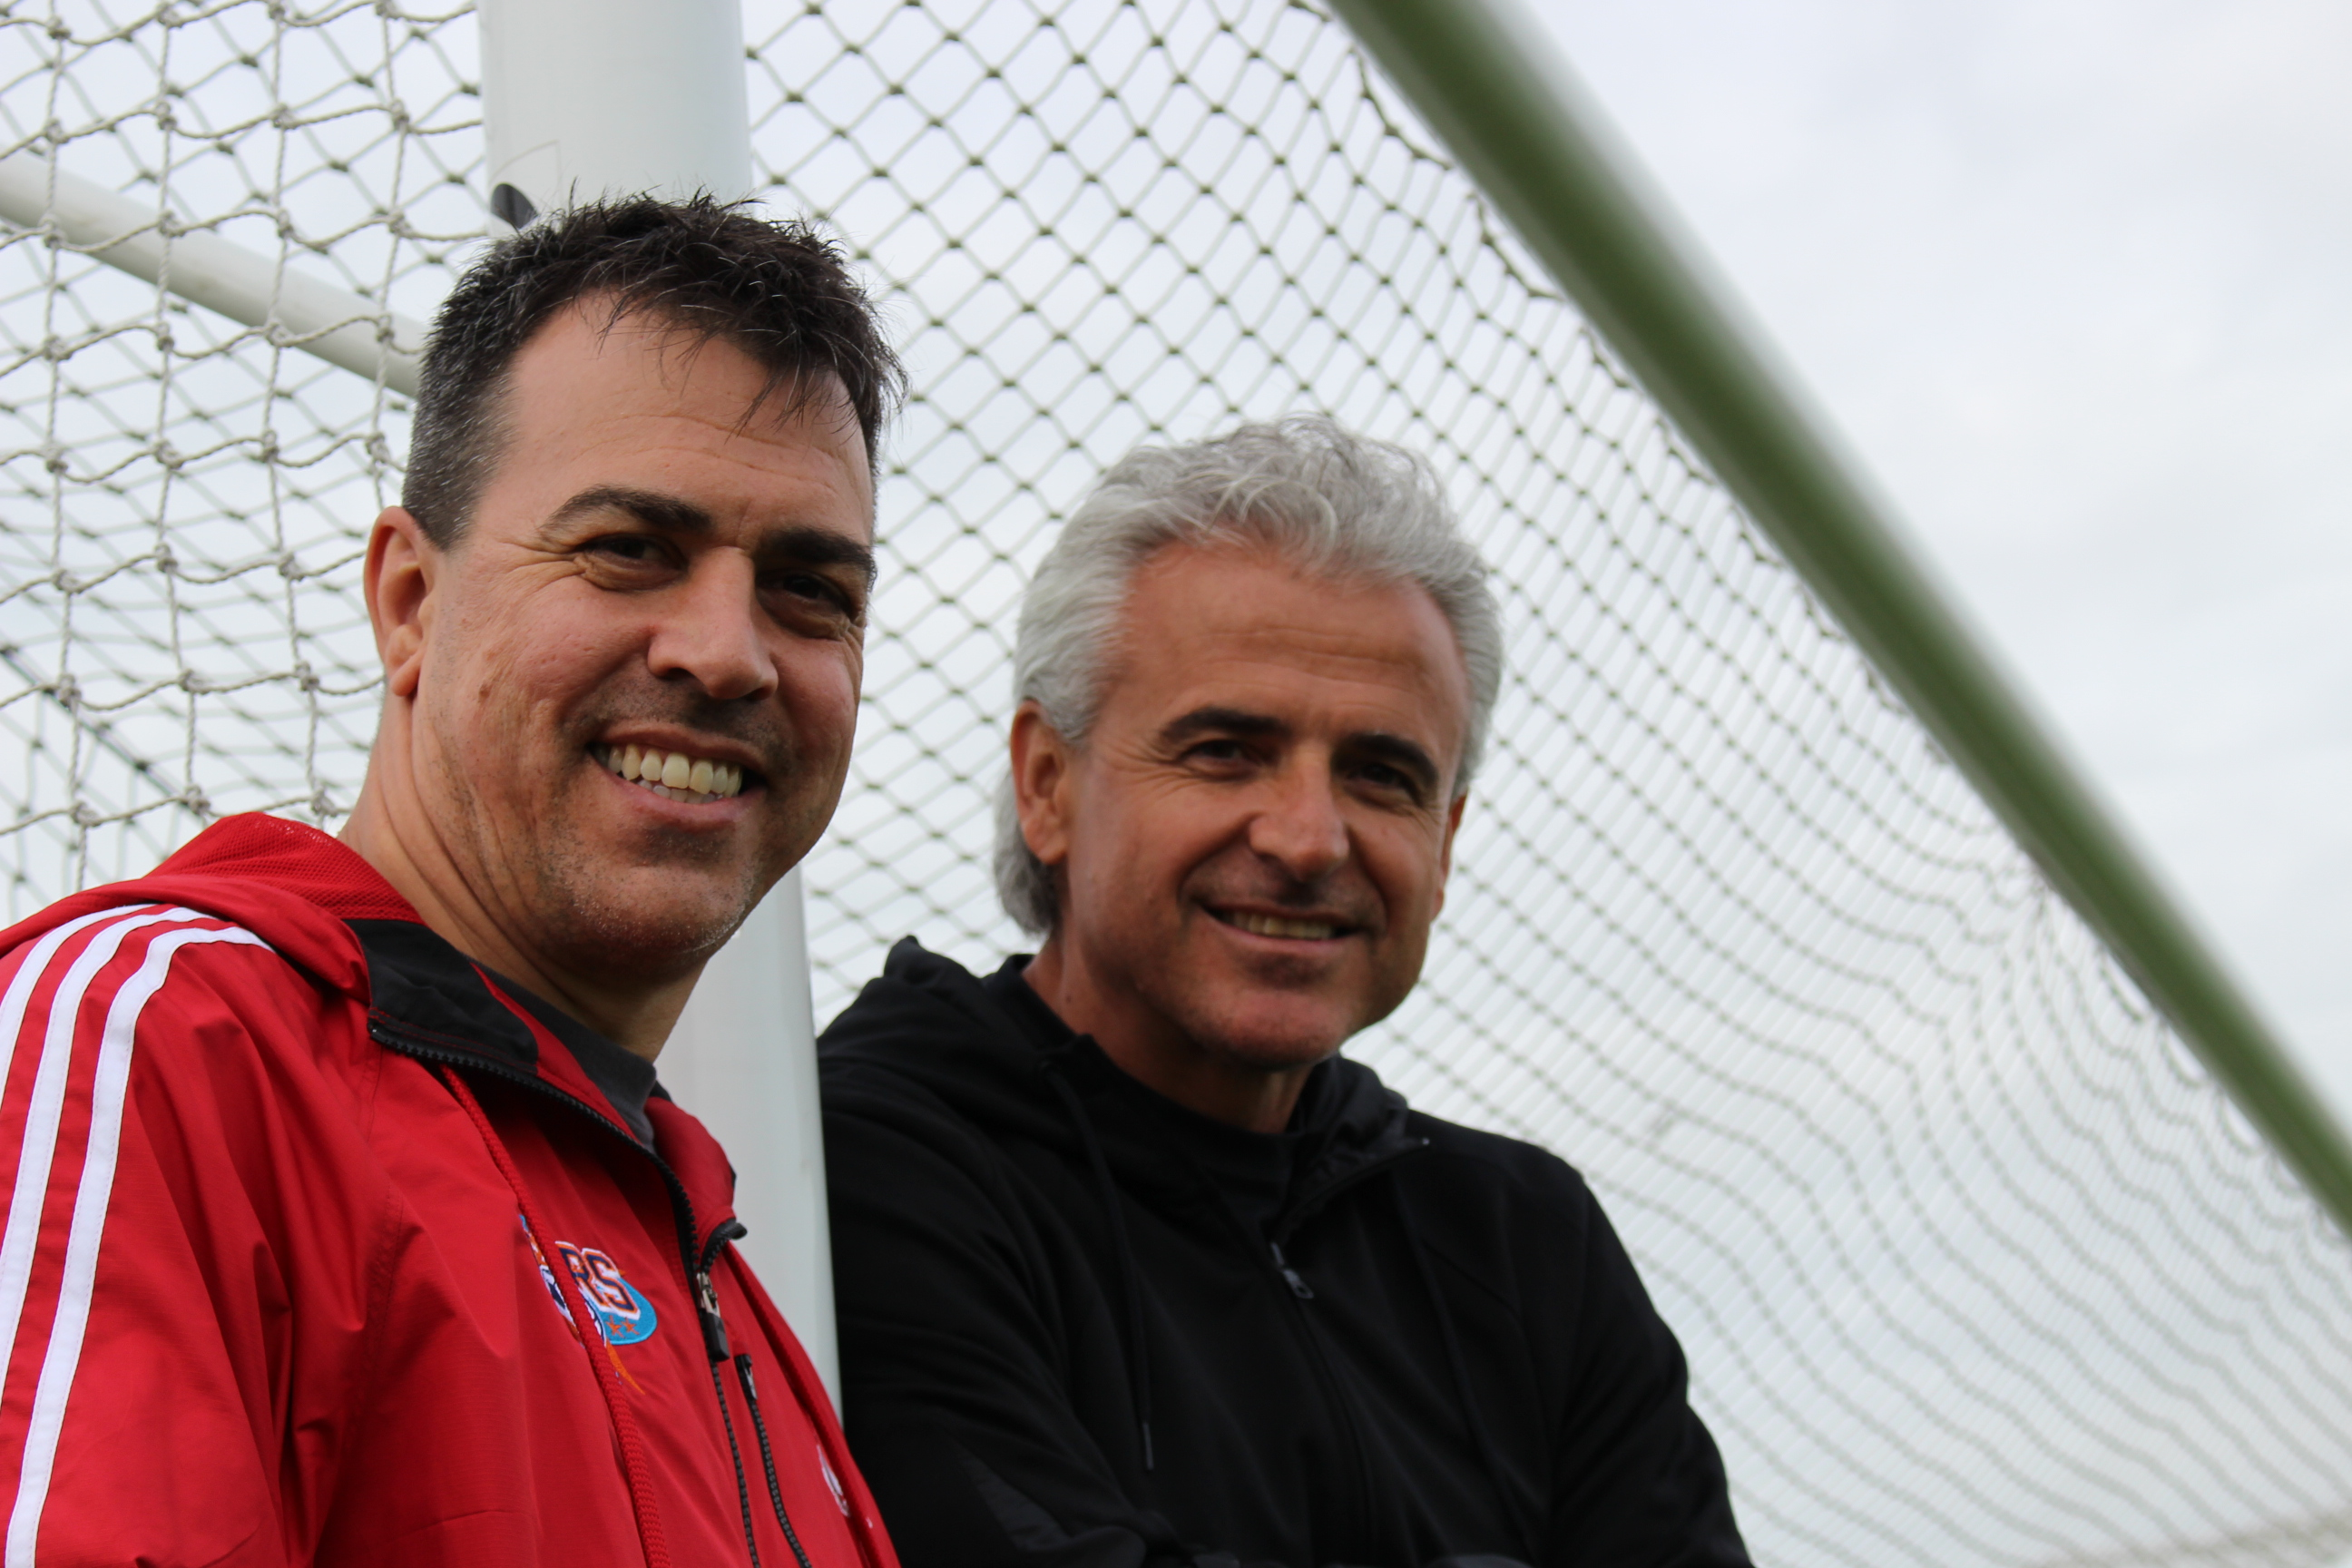 Windsor Stars coach Steve Vagnini (L) and Director Vancho Cirovski at the McHugh soccer complex in Windsor on May 28, 2014. (Photo by Ricardo Veneza)